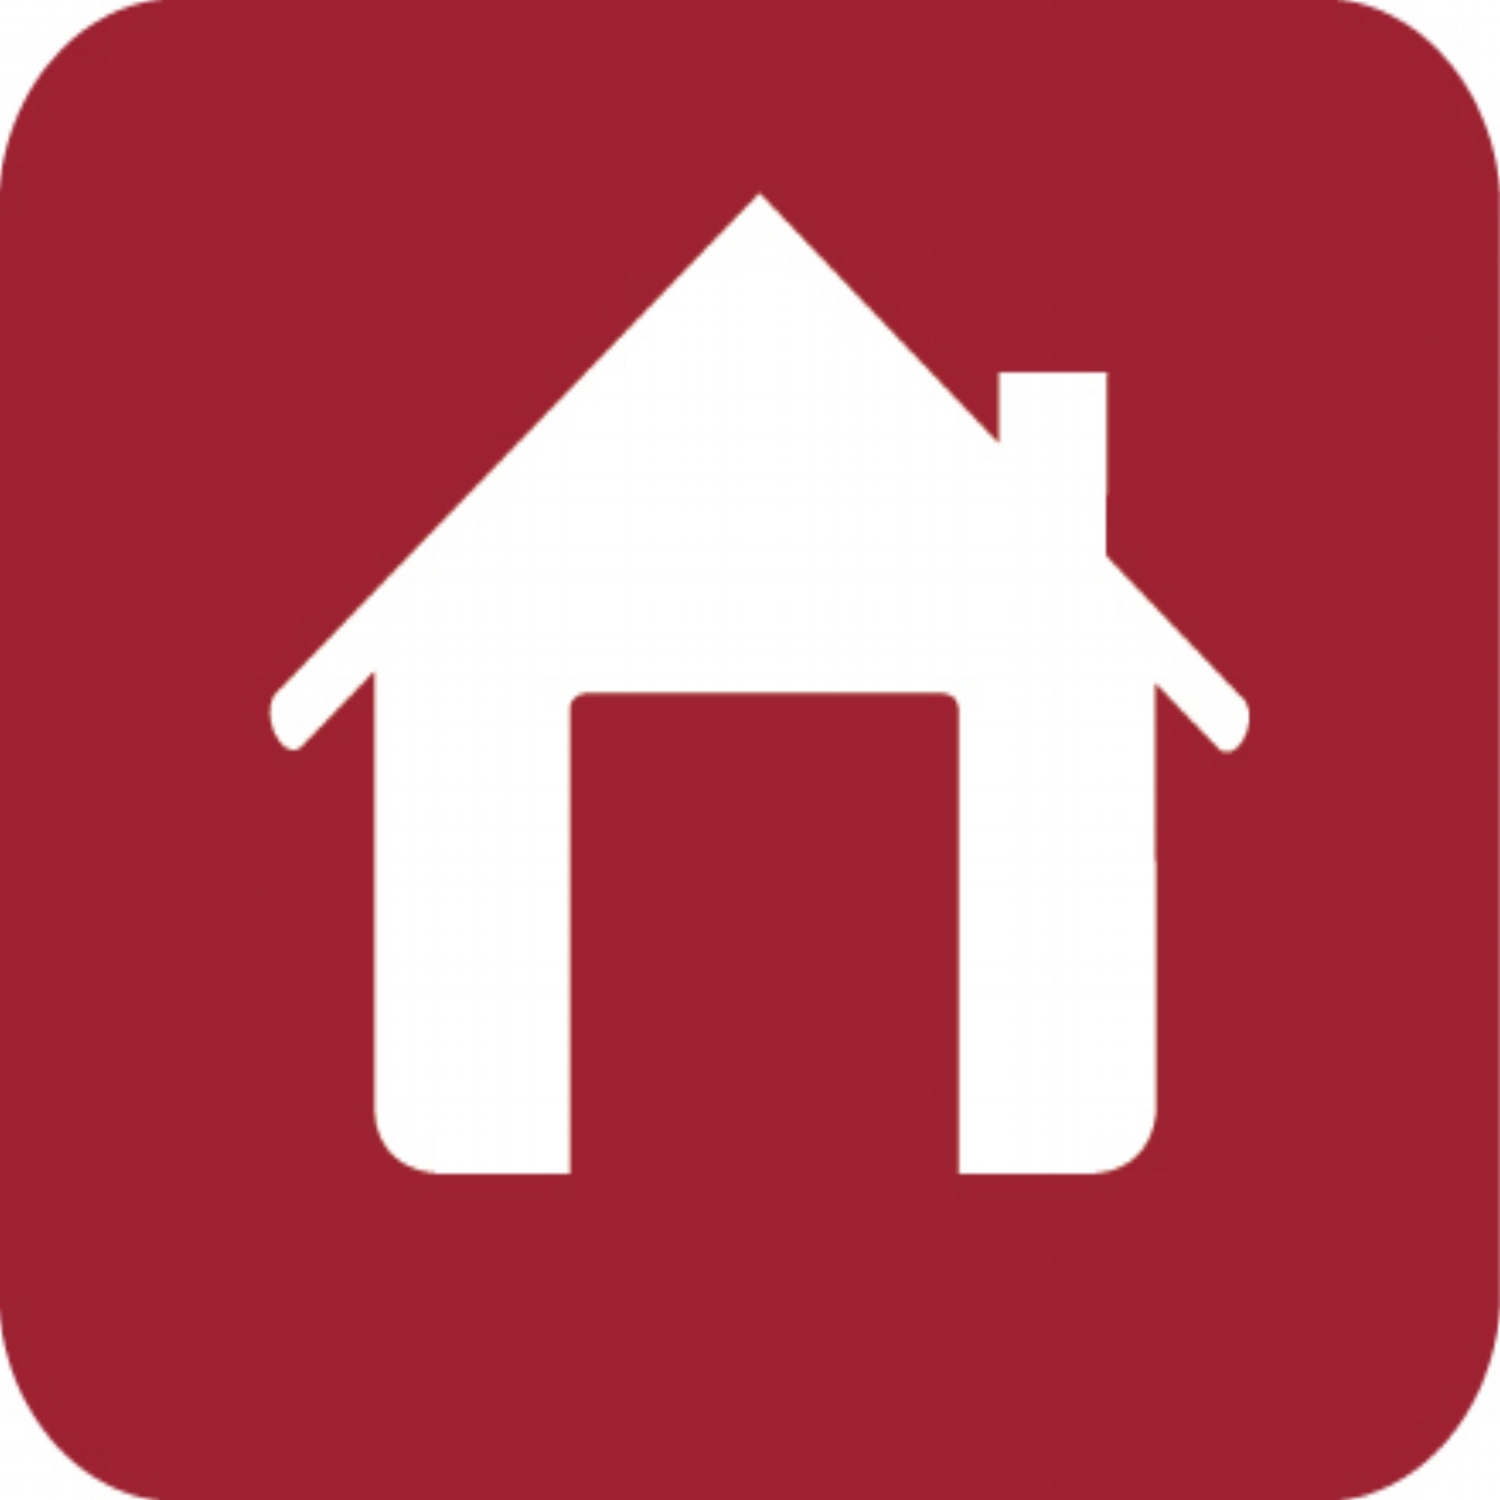 Red House Icon.jpg